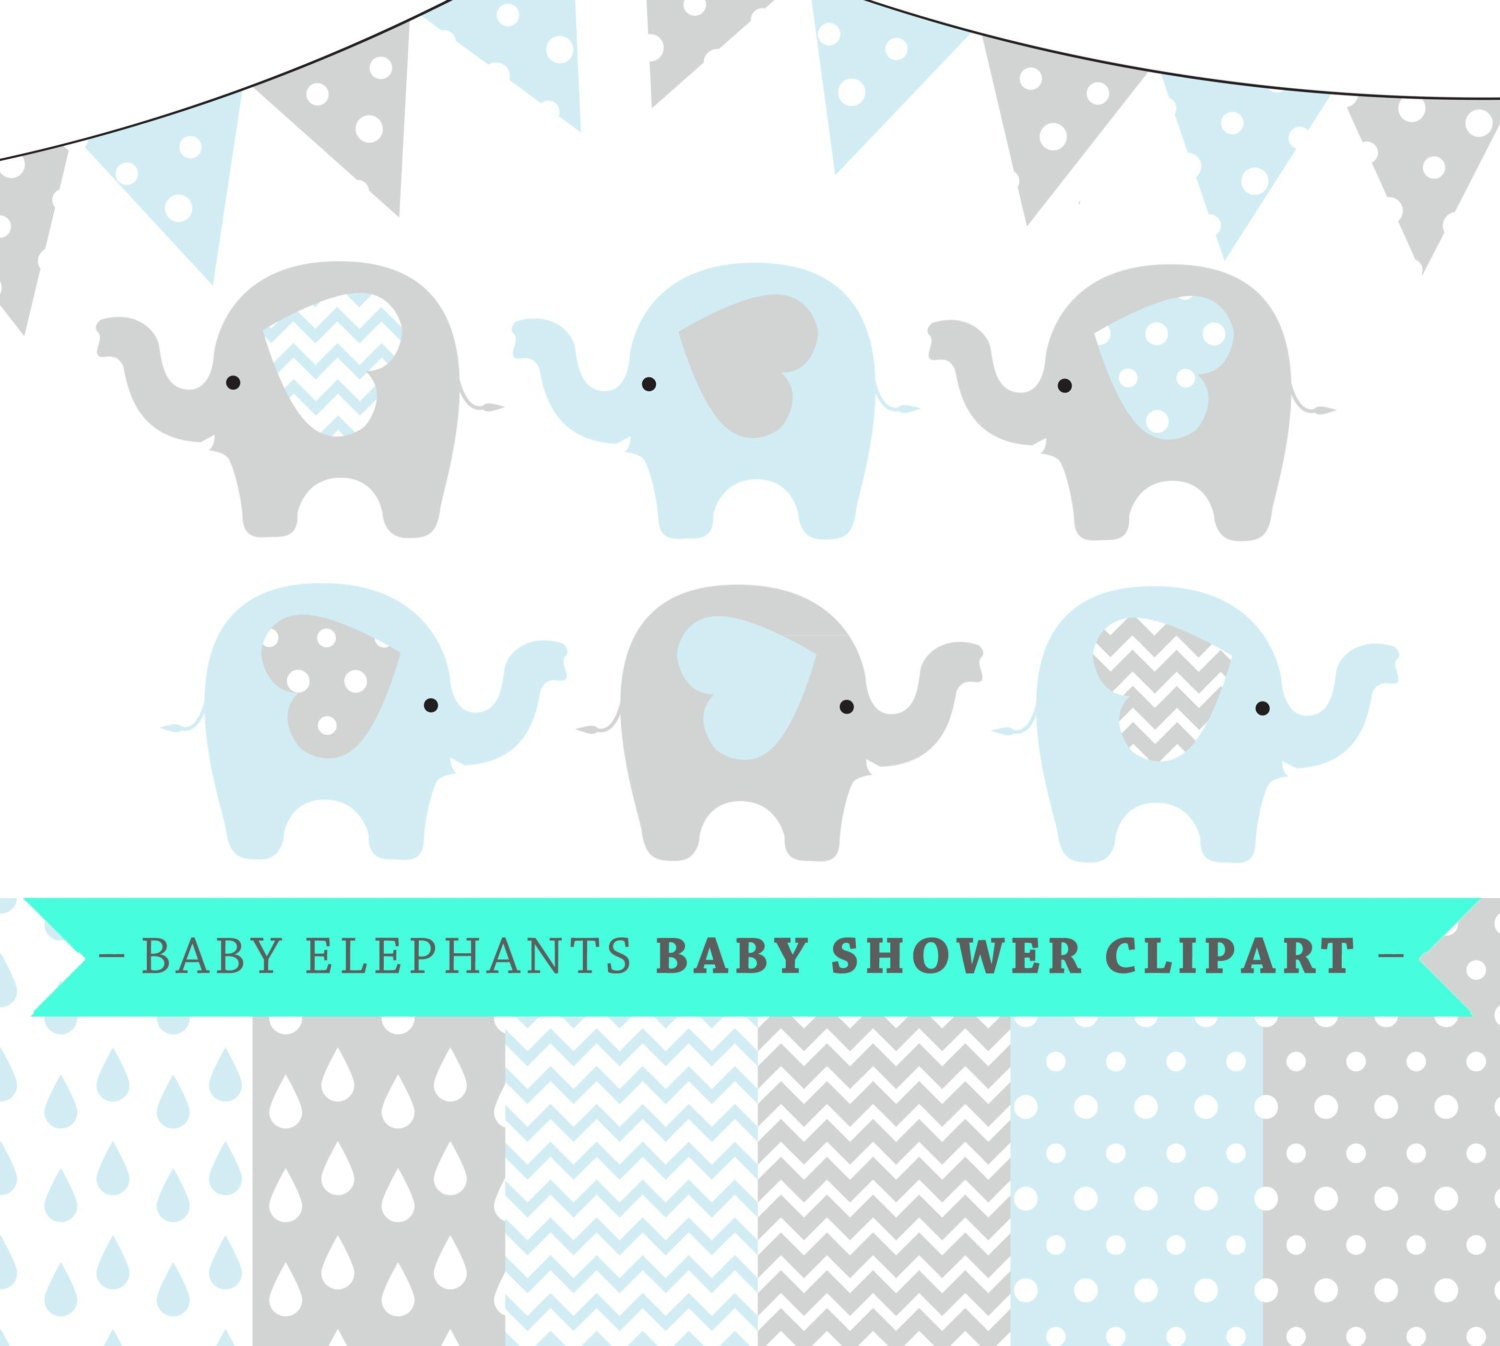 Premium baby shower vector clipart - Baby elephants - blue ...